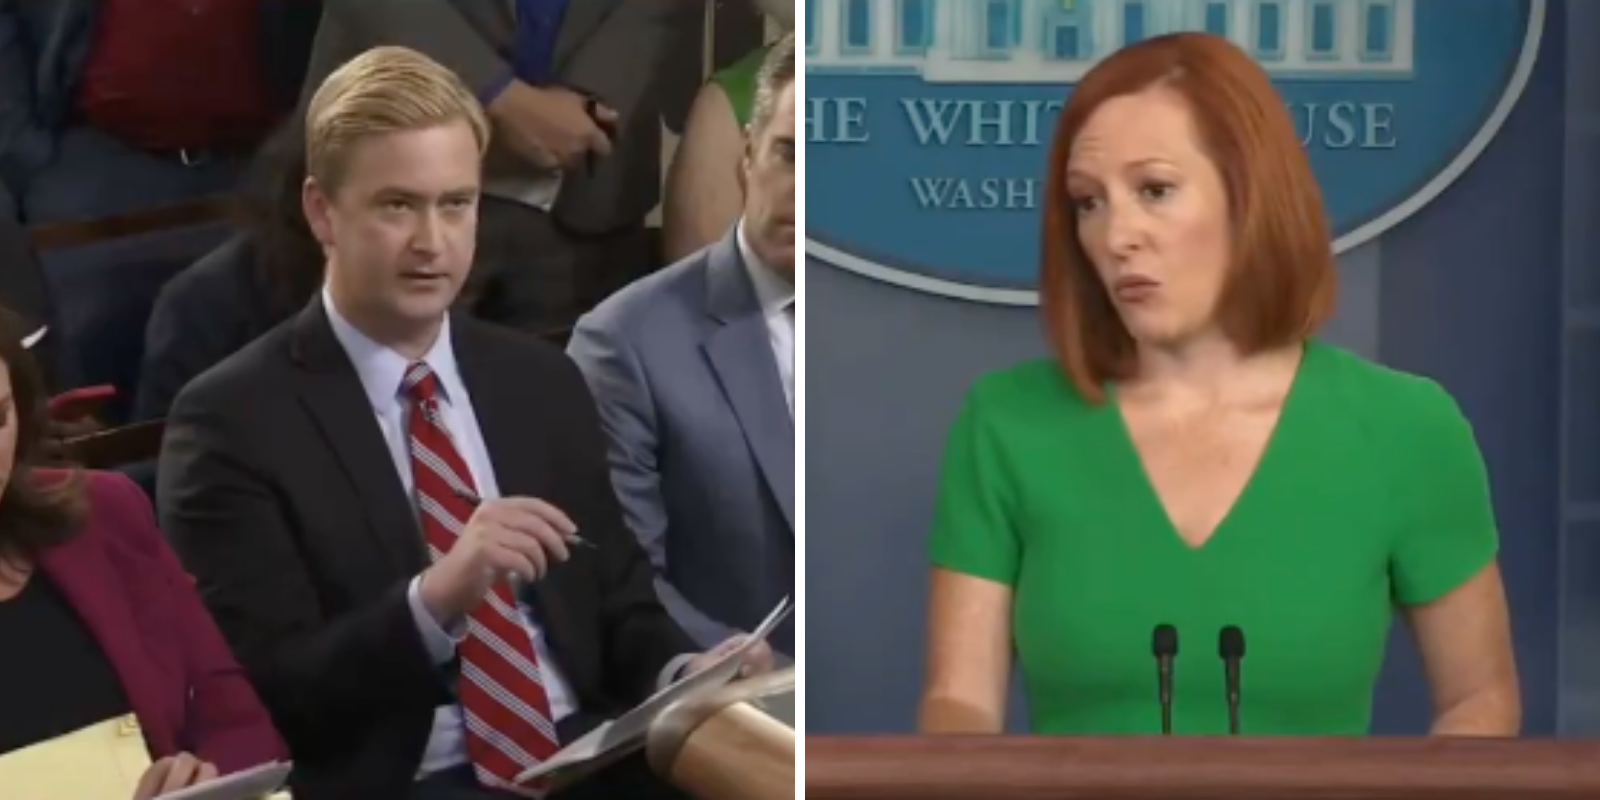 WATCH: Peter Doocy asks Psaki if Fauci should be censored and removed from social media for his 'misinformation'